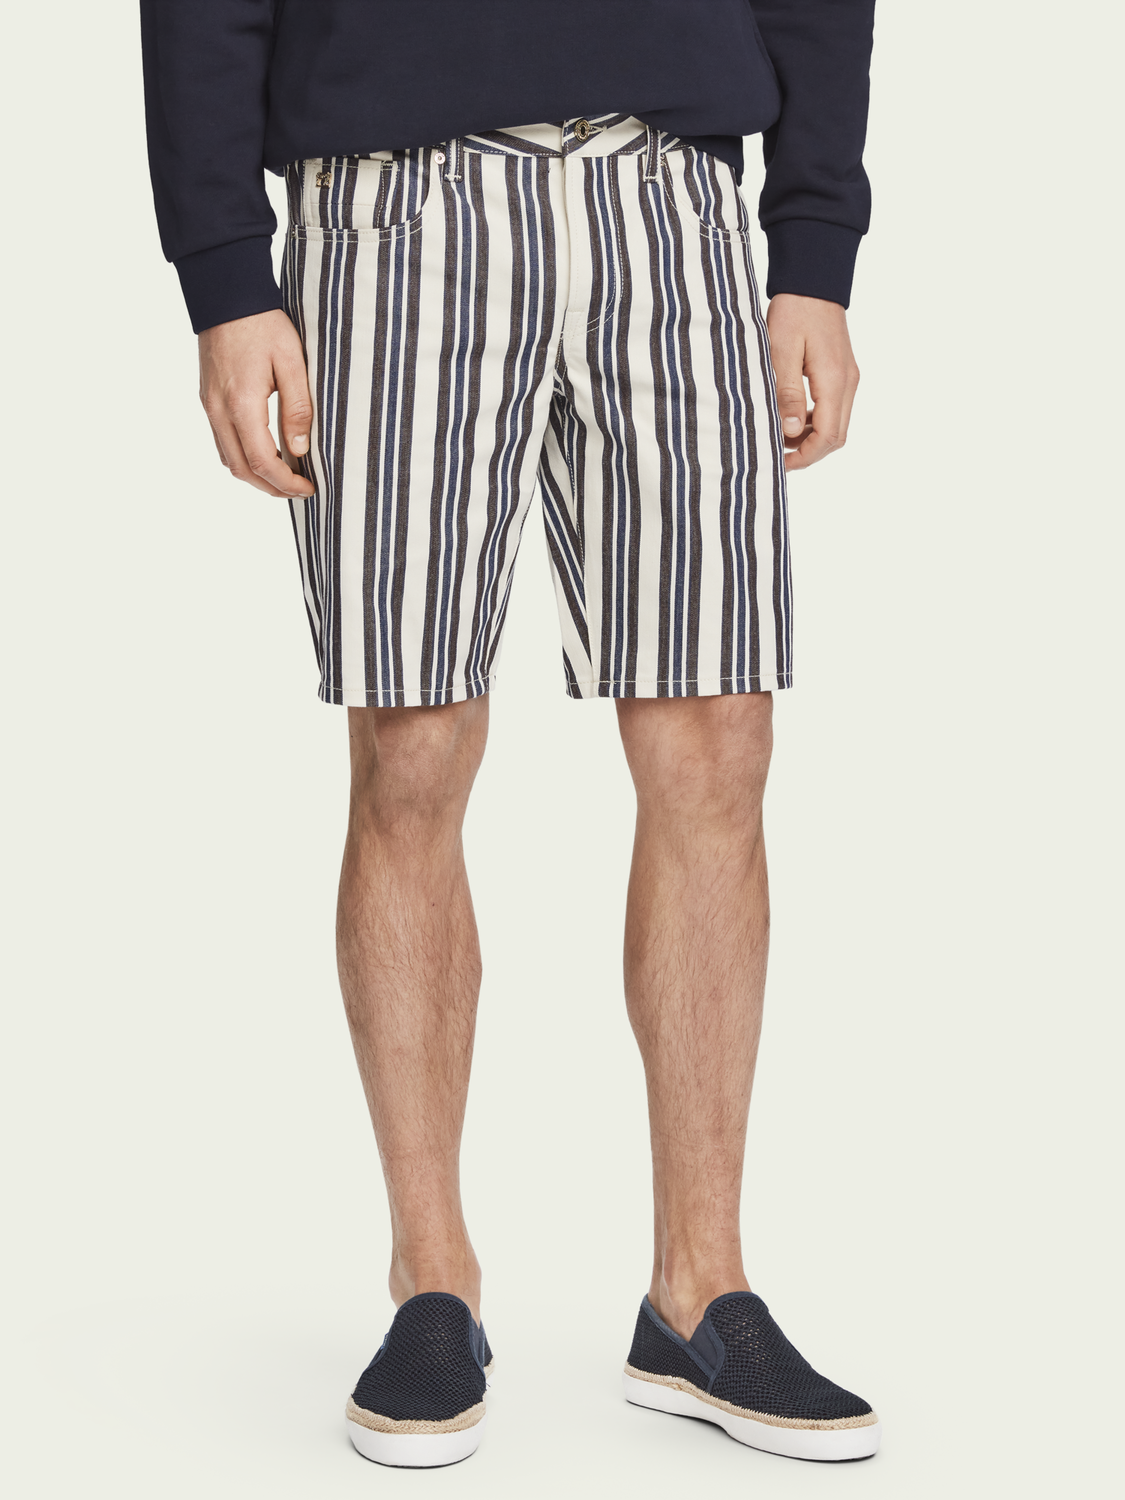 Herren Ralston Shorts – Stripe out | Mid Rise Slim Fit